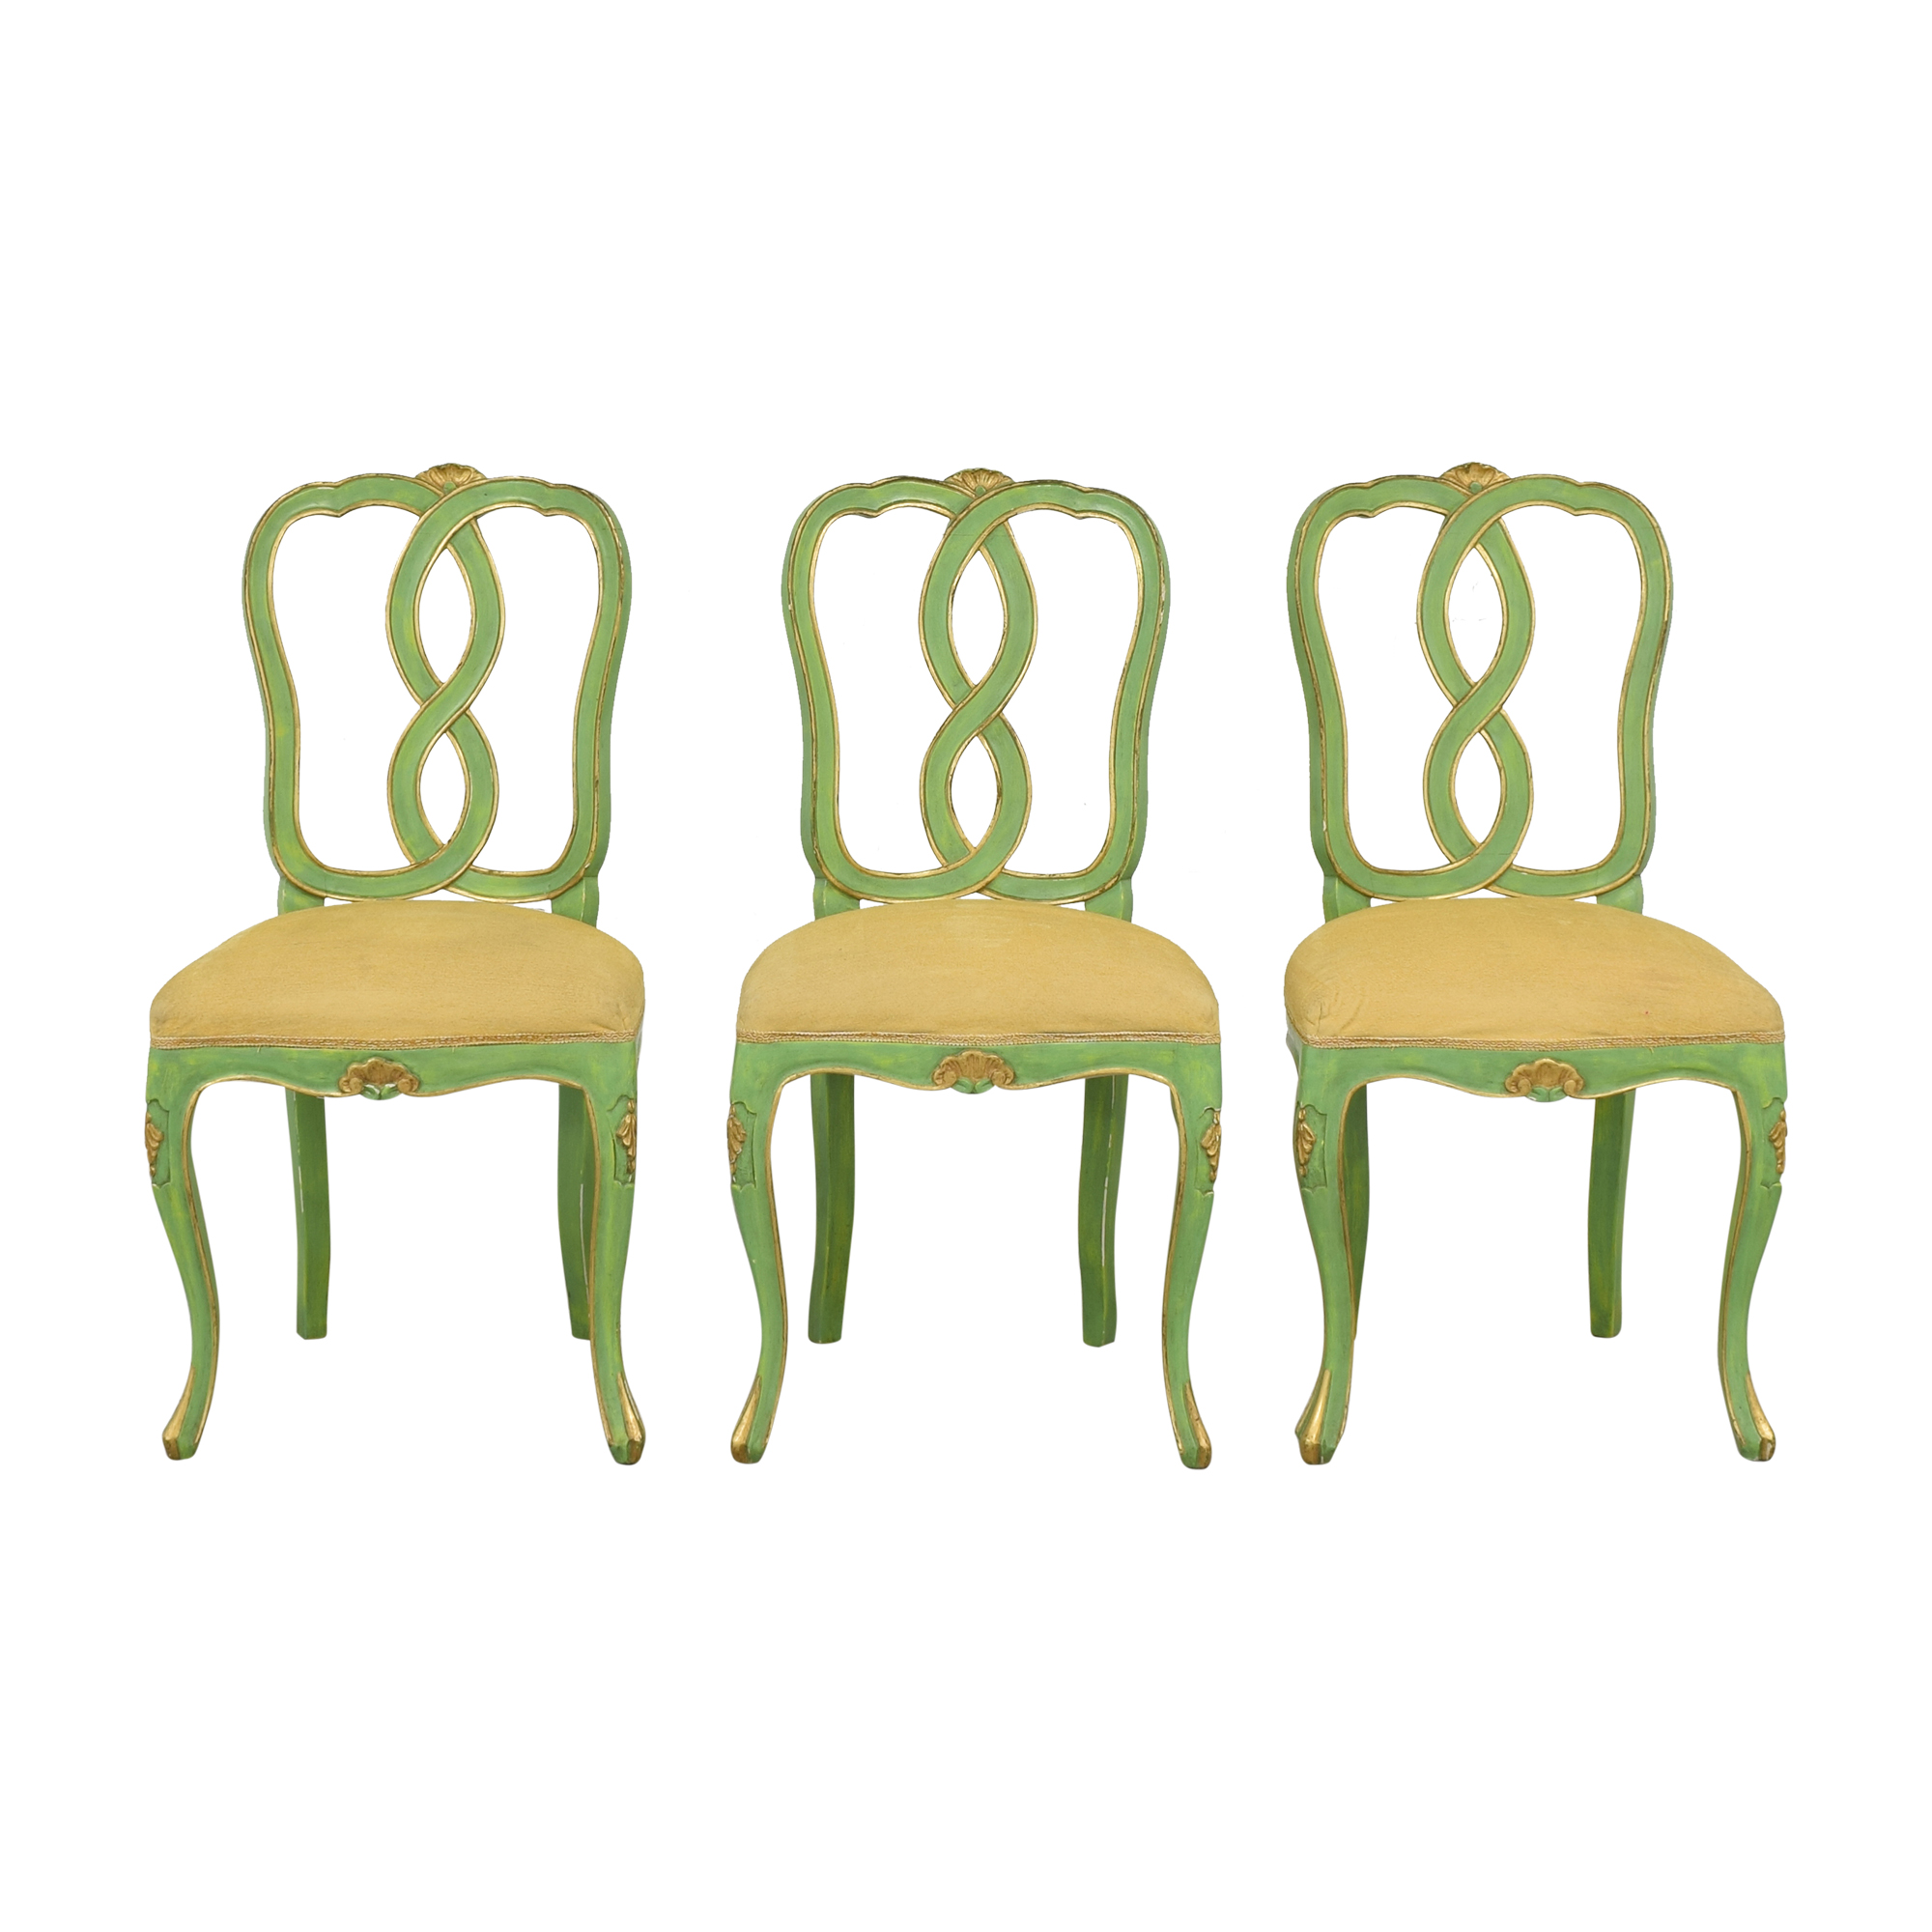 buy Bergdorf Goodman Green and Gold Chairs Bergdorf Goodman Chairs